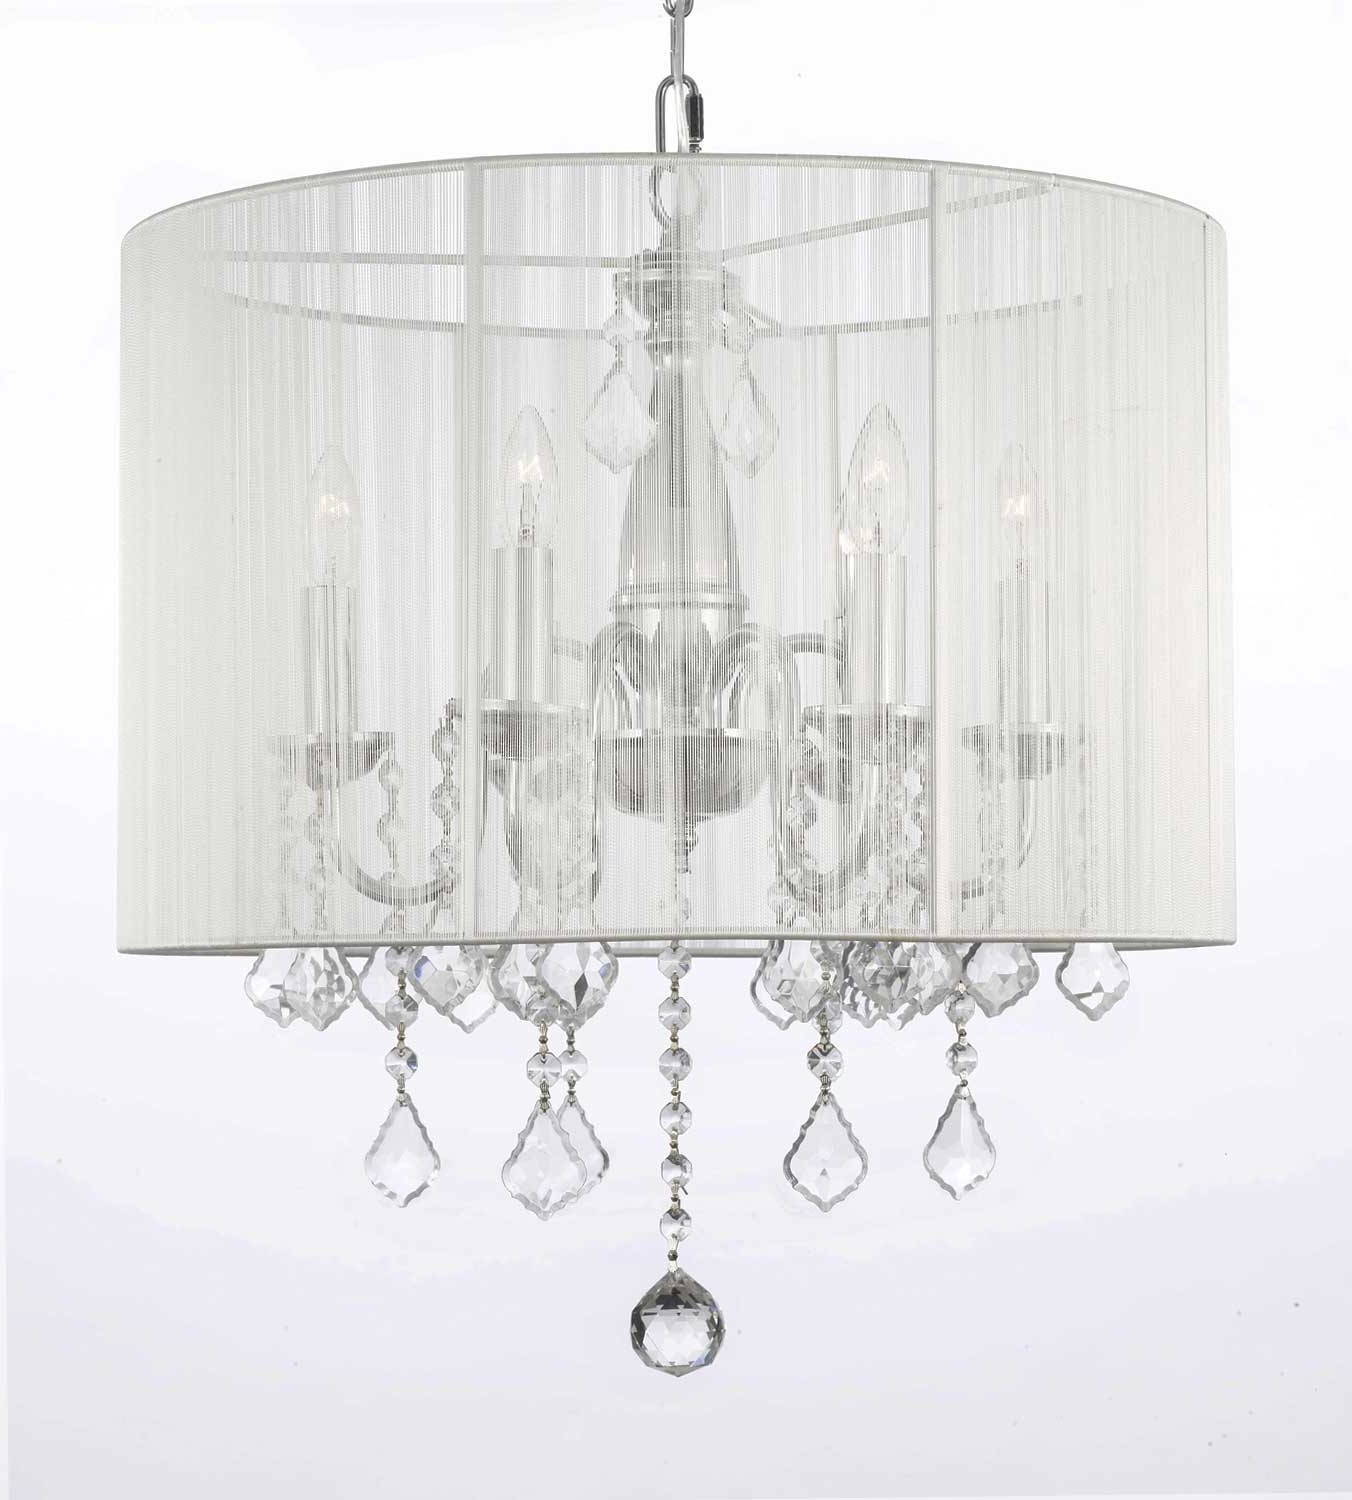 Chandelier With Shades And Crystals Intended For Most Current Chandeliers : Pleasing Chandelier Bulb Shades Images Inspirations (View 18 of 20)